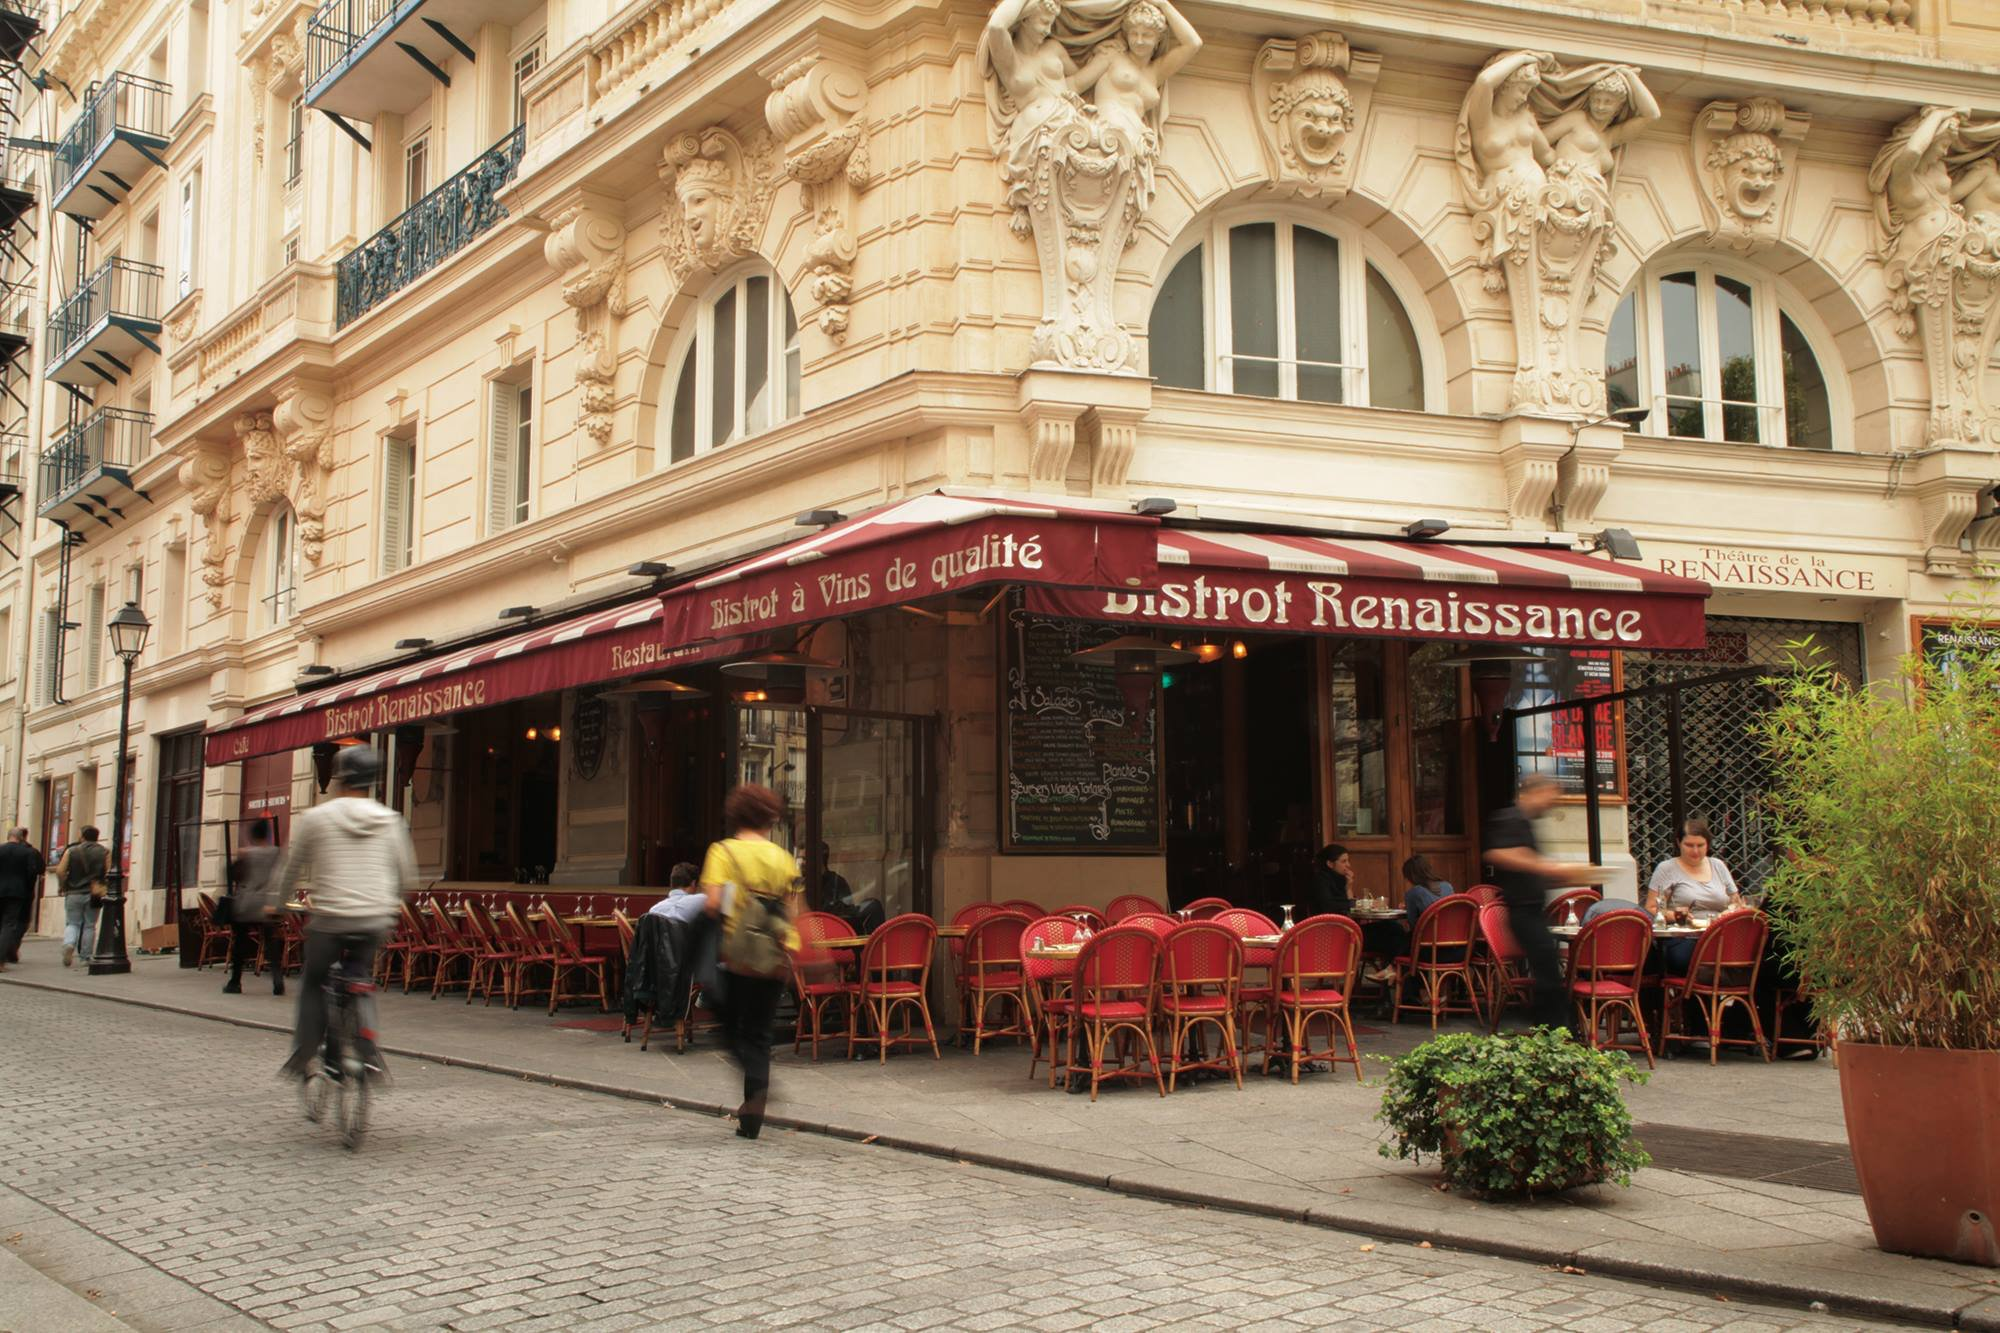 Bistrot renaissance paris chateau d 39 eau gare du nord for Bar exterieur paris